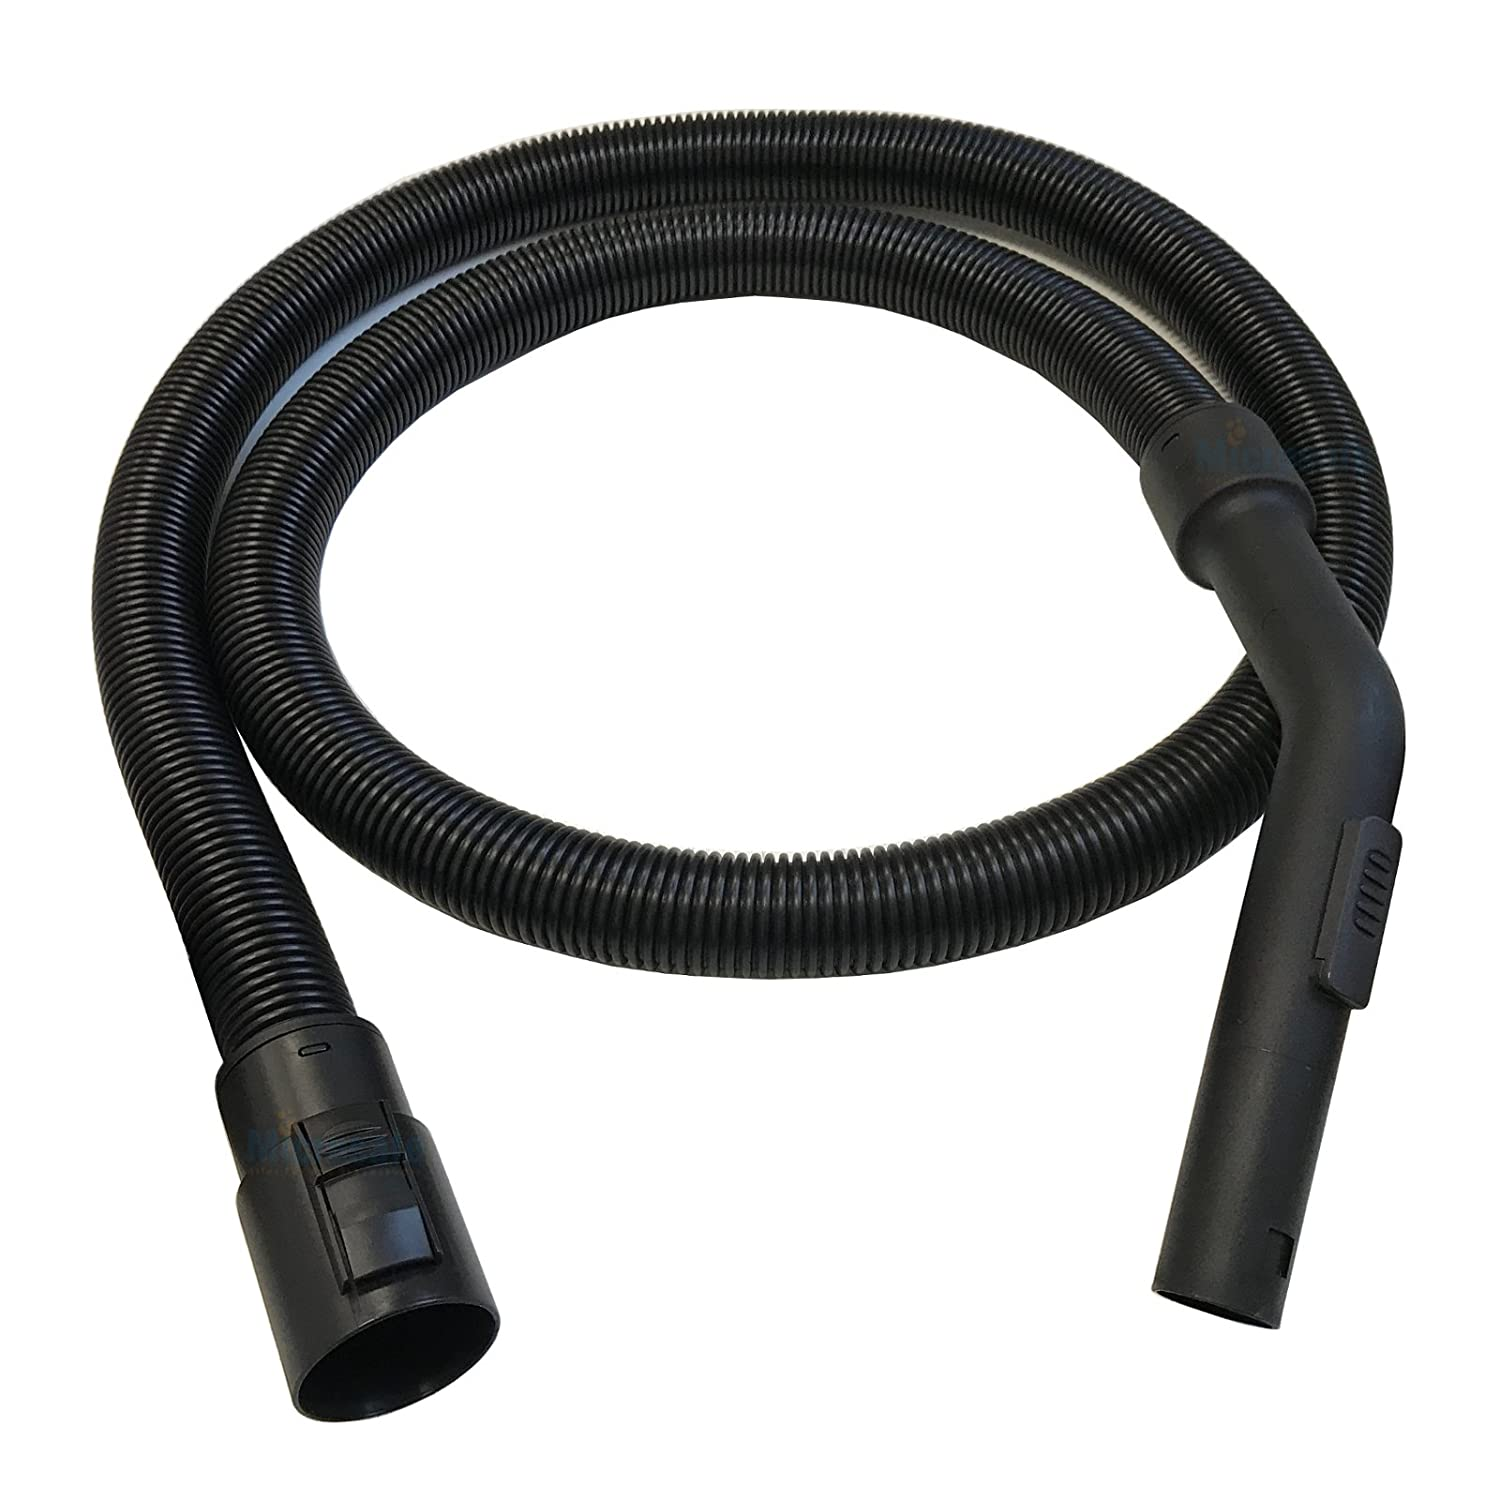 2.2 m Suction Hose for Kärcher Models WD3 WD 3.200/WD 3.300 M/WD 3.500 P/WD 3.800 M Eco. ogic/WD3) Complete with Handle from Mirosafe® Microsafe®